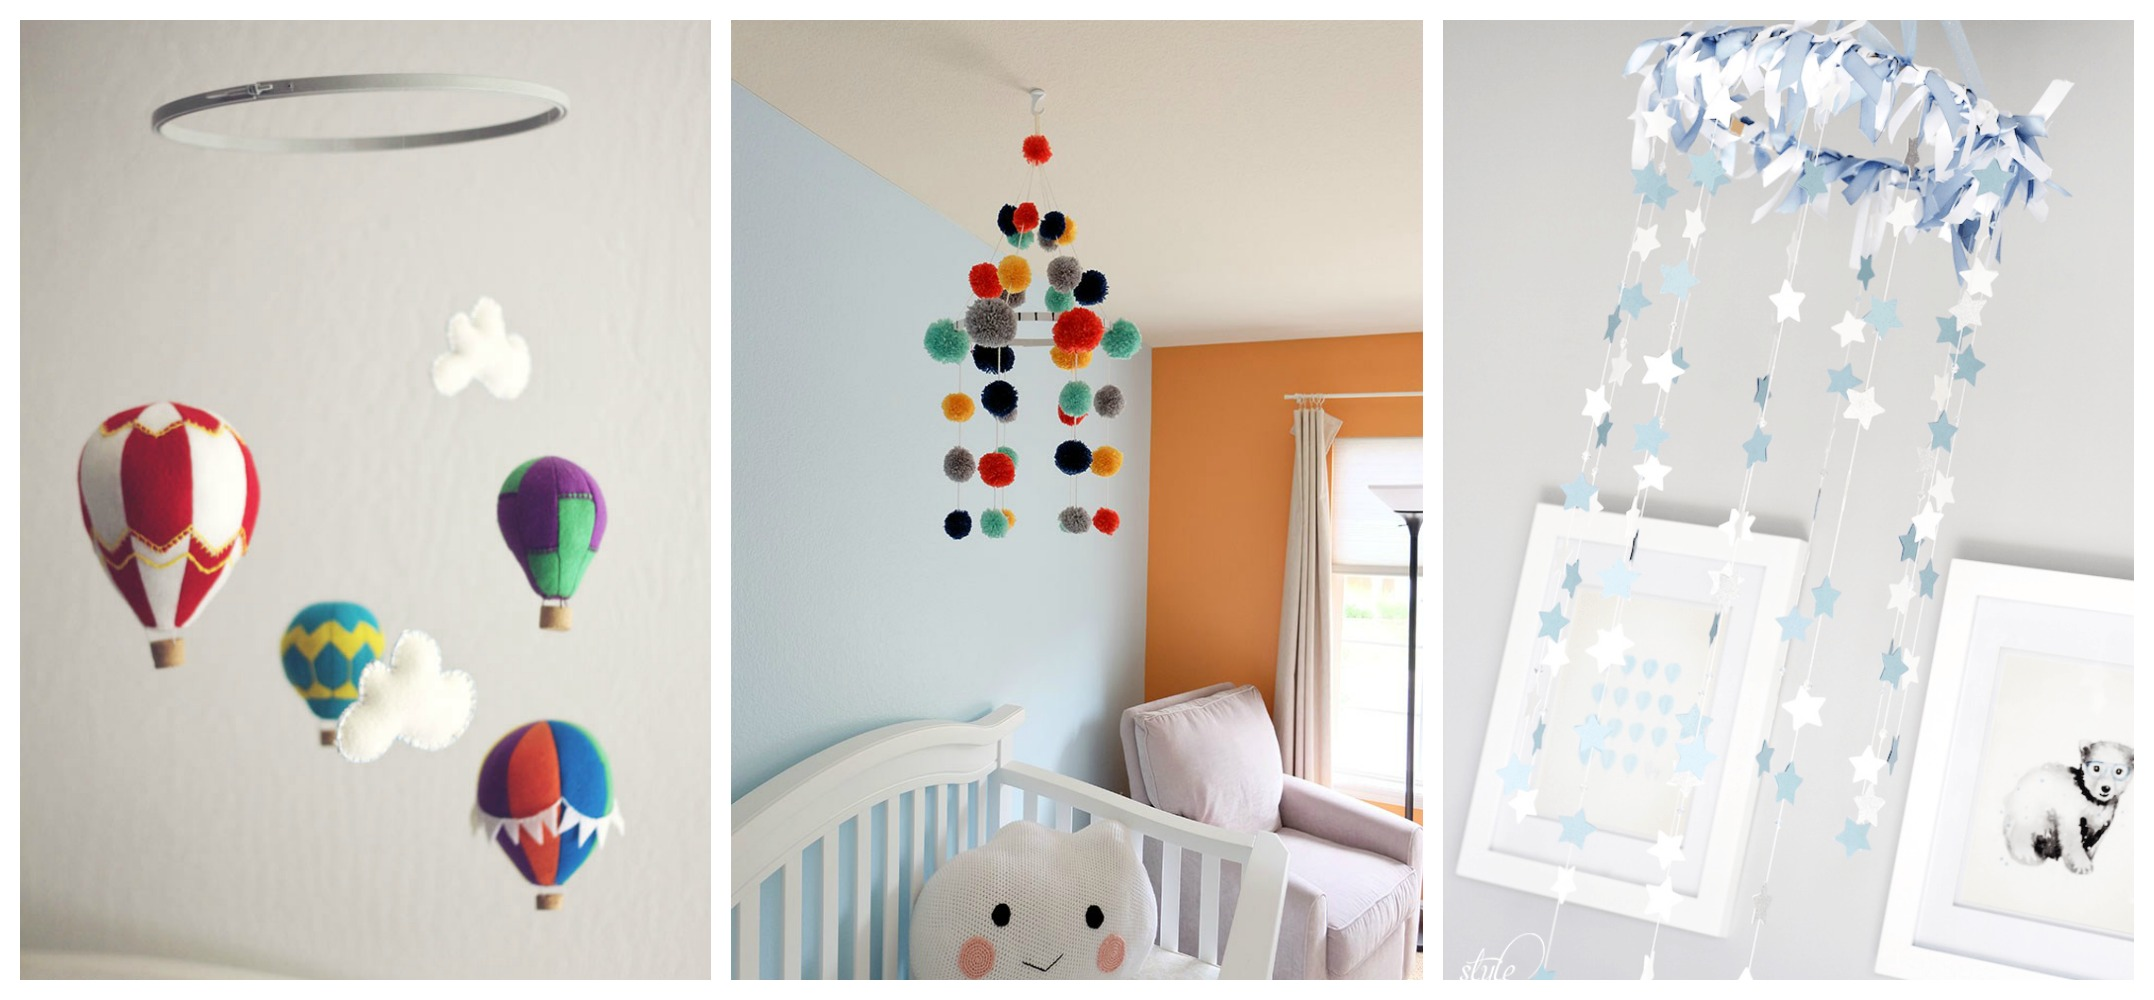 6 adorable diy baby mobiles diy thought. Black Bedroom Furniture Sets. Home Design Ideas